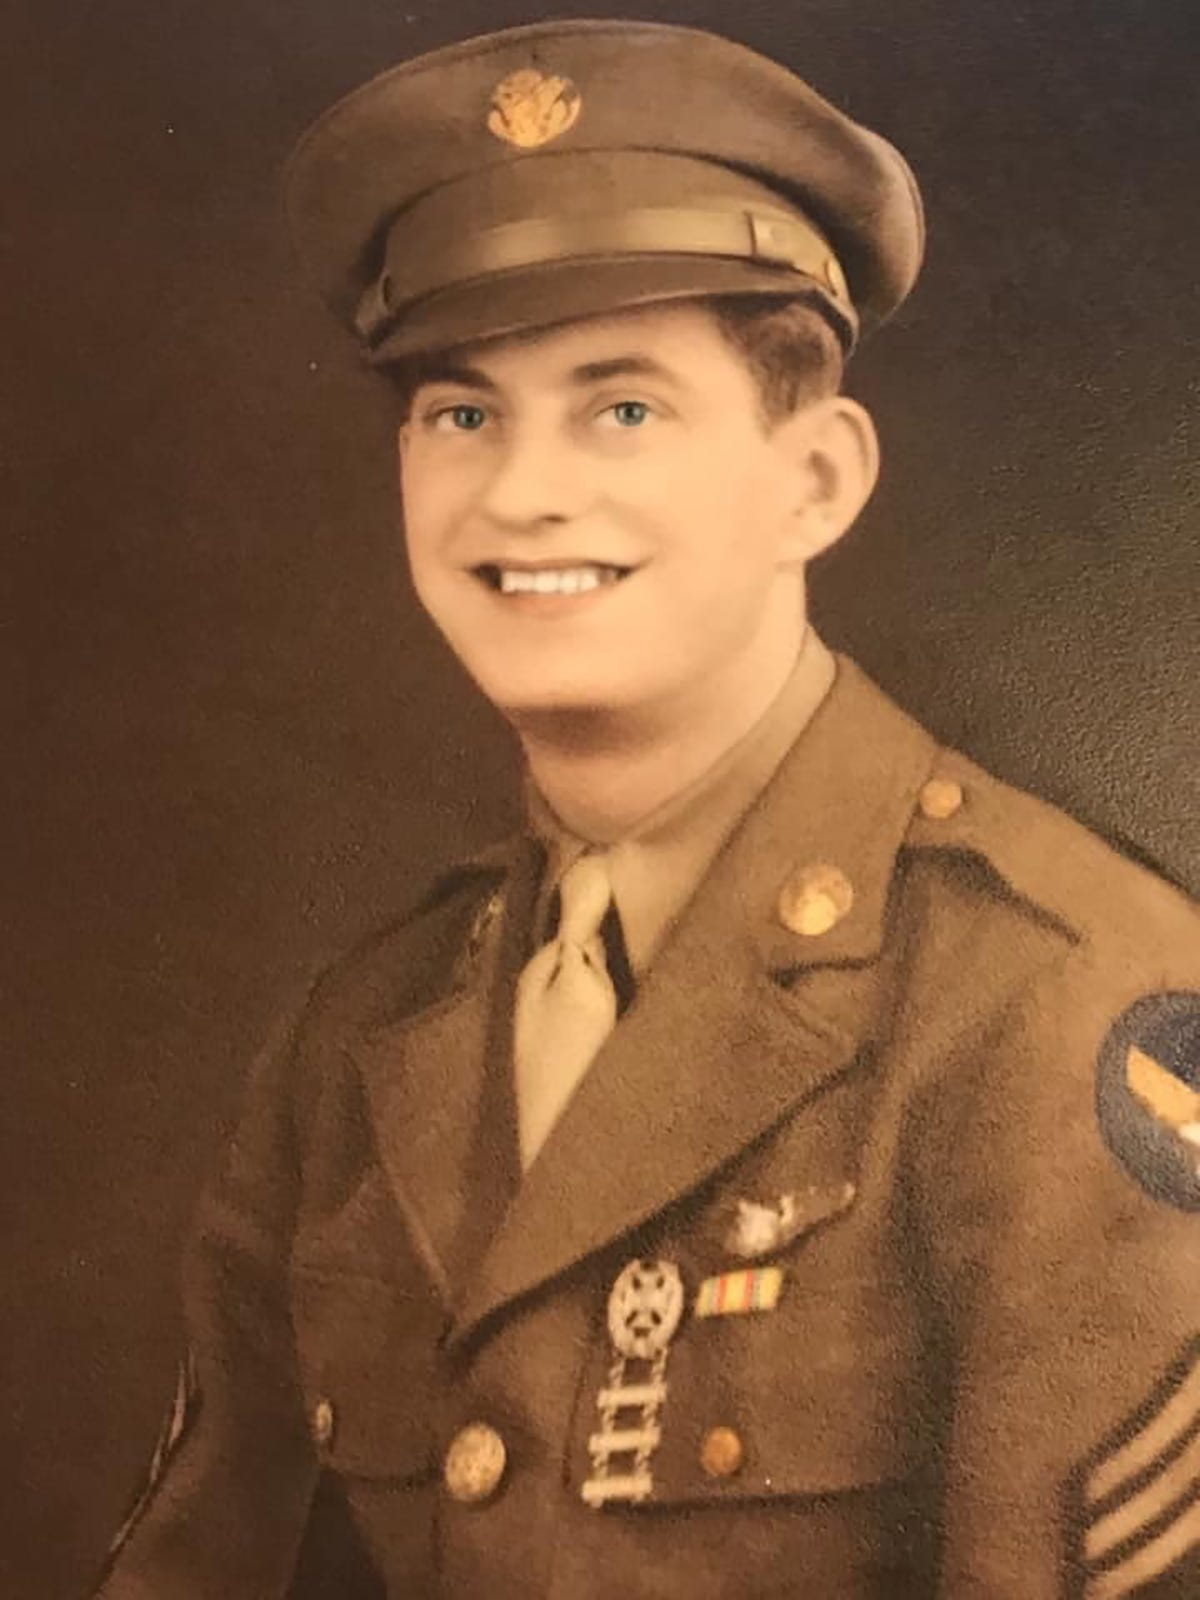 78 years after Alaska airman went missing in World War II, his remains are returned to his family 2